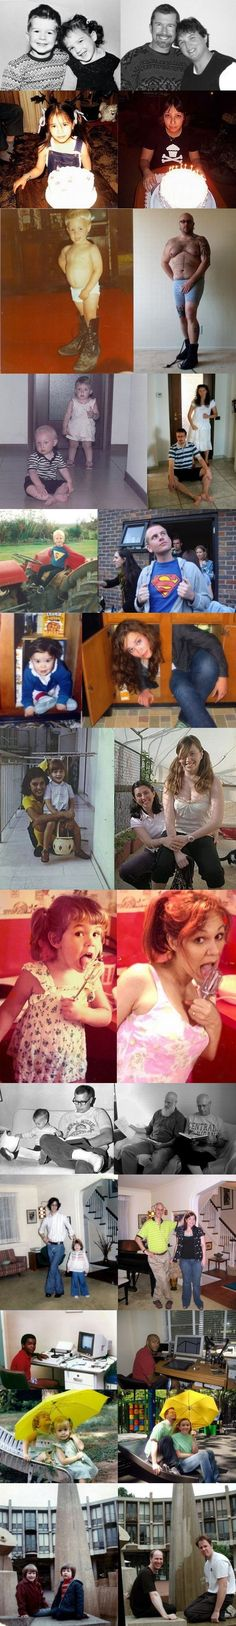 Recreating childhood photos!